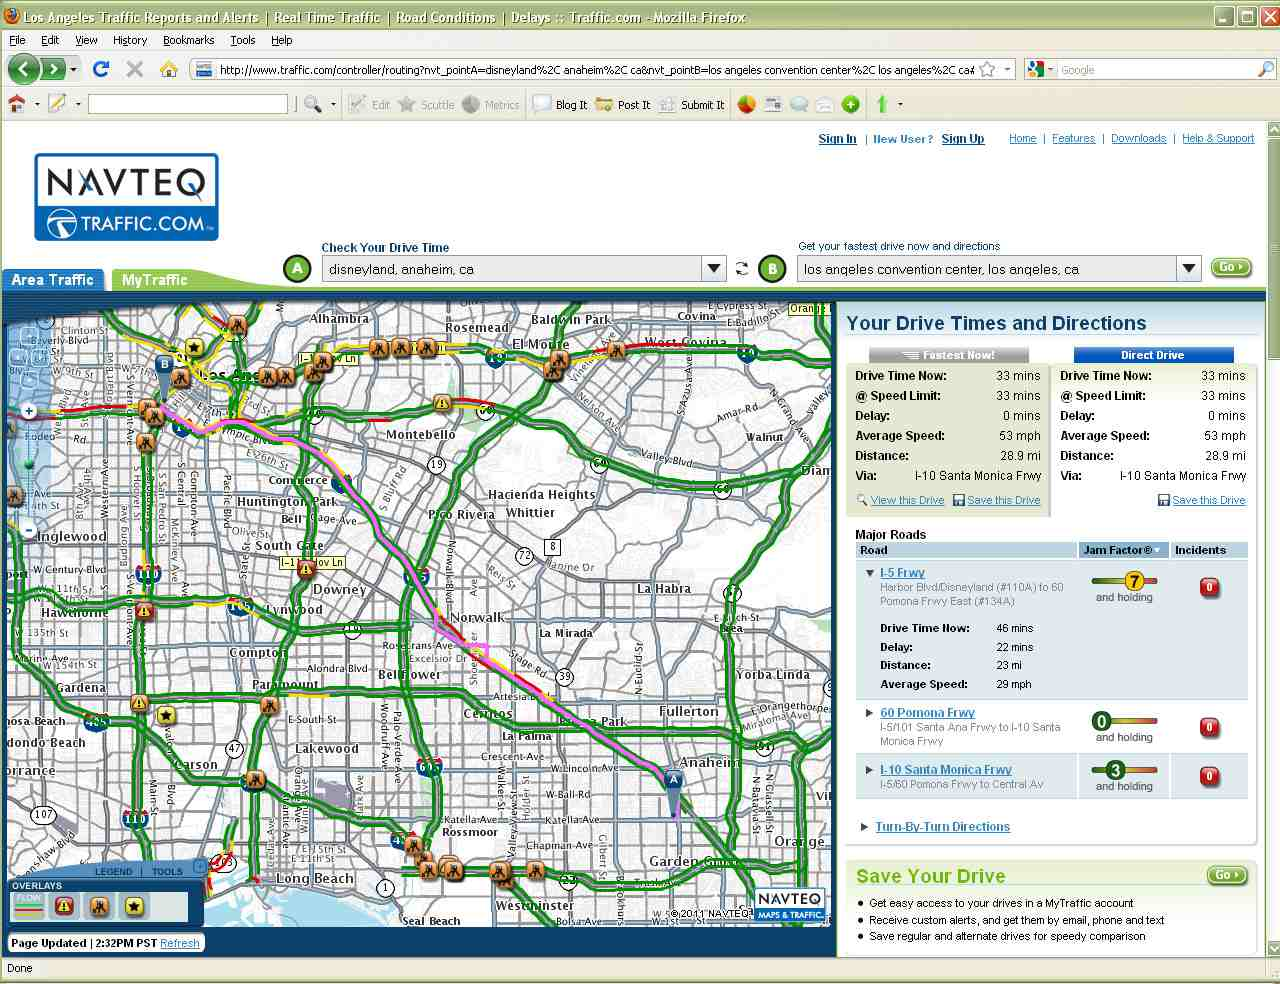 Best Los Angeles Traffic Maps and Directions Sigalert Com Los Angeles Traffic Map on san gabriel mountains california map, la live map, caltrans sigalert los angeles map, los angeles county, l.a map, 511 traffic los angeles map,